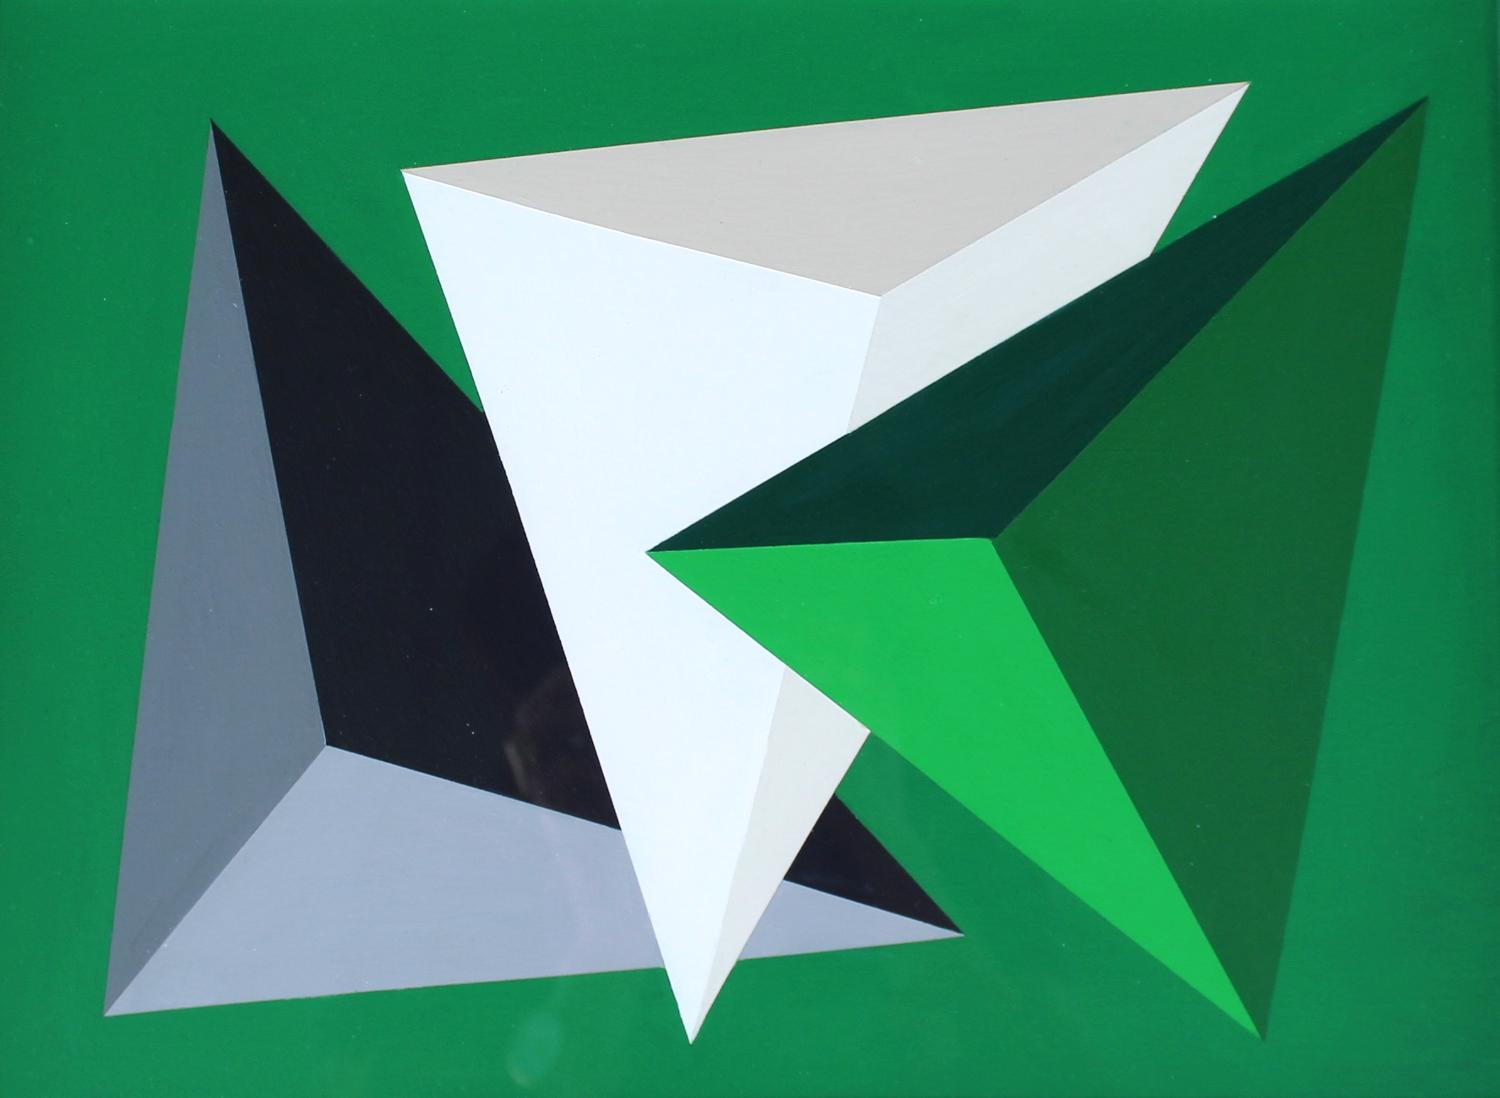 Rob Wyn Yates - Transformation Green